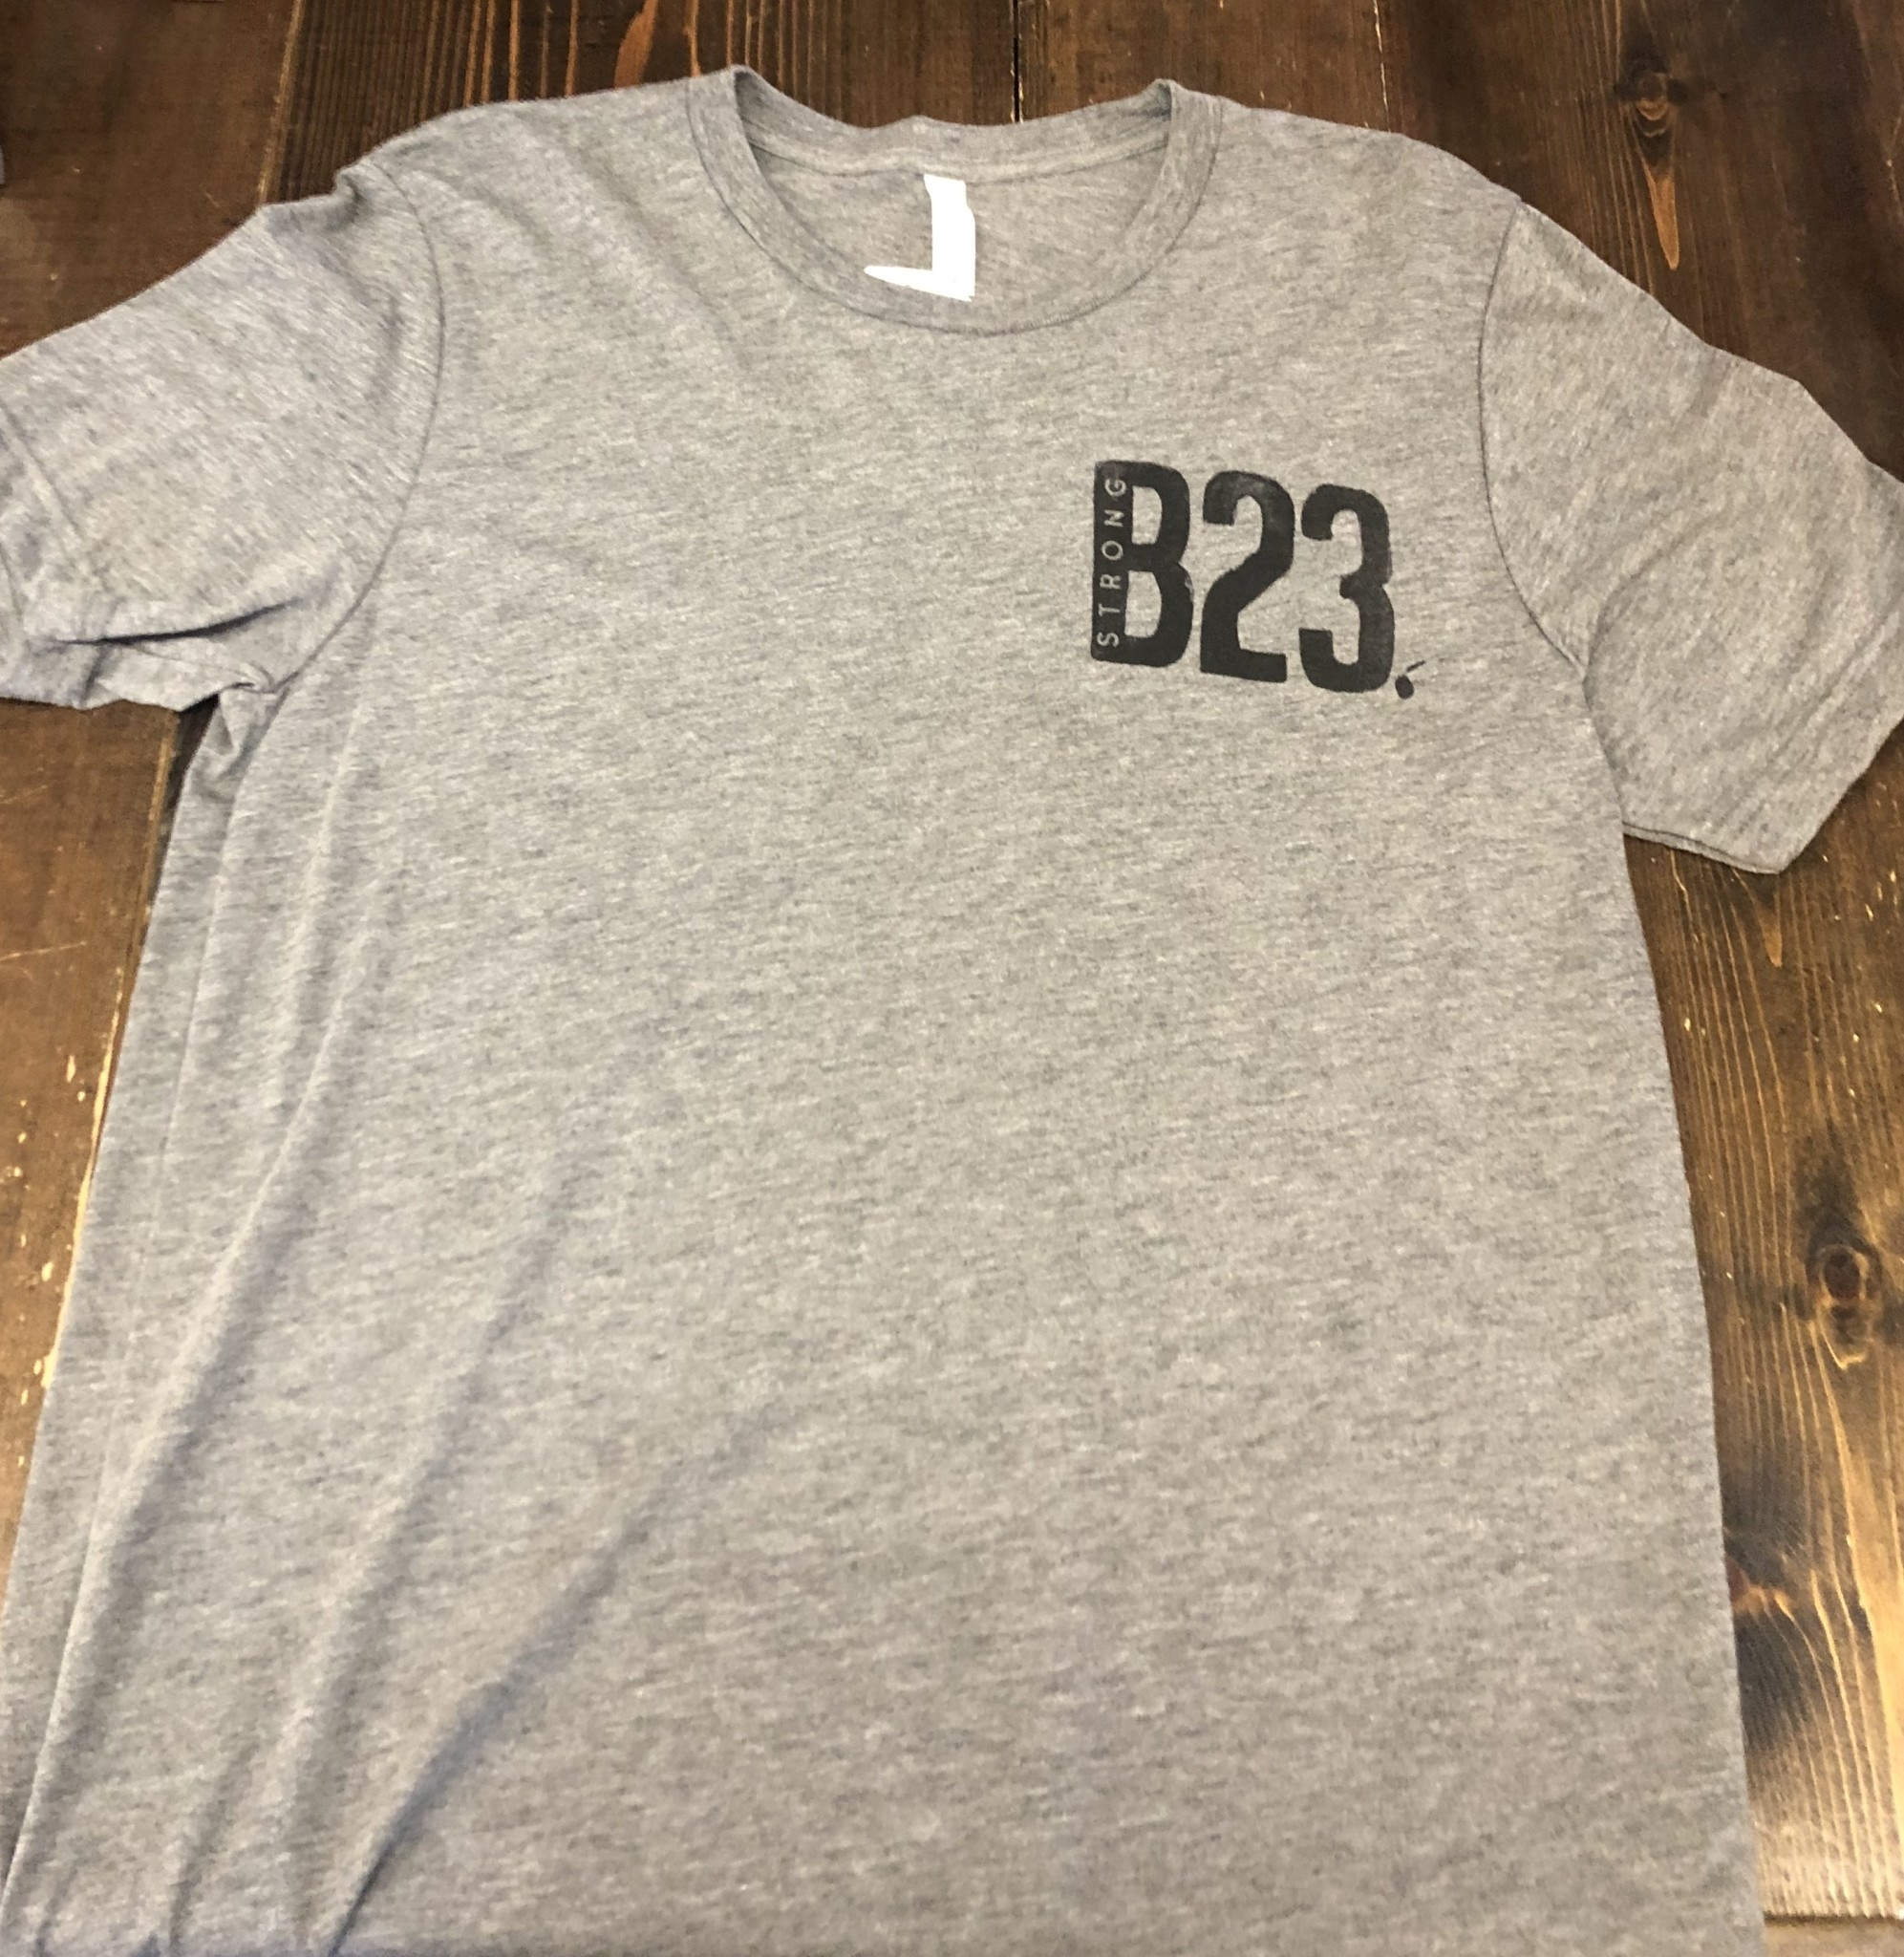 B23 Strong Graphic Tee